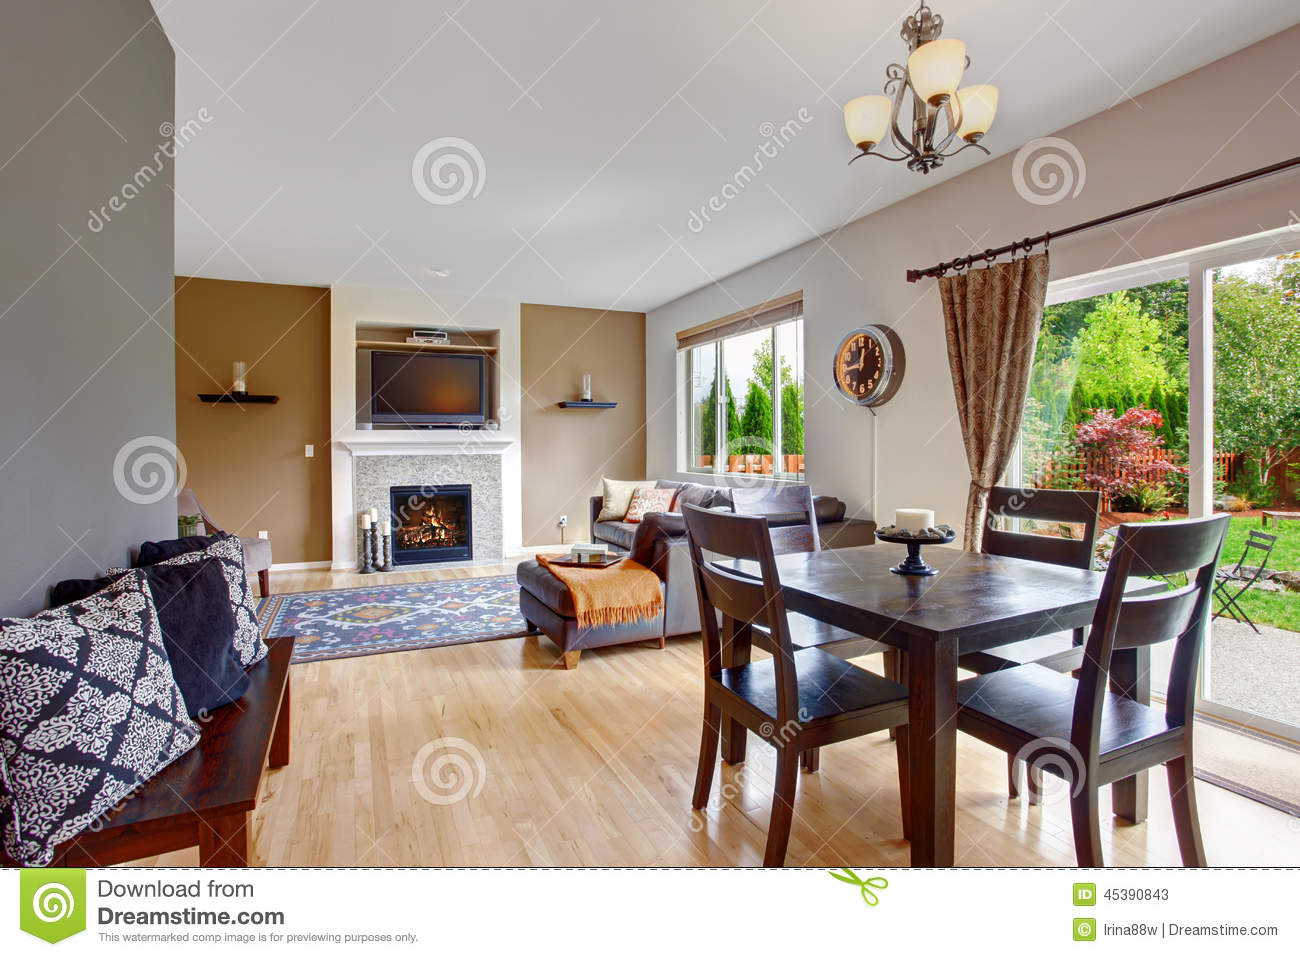 American house interior with open floor plan dining room with e stock photo image 45390843 - Houses with bedroom exit to the backyard ...